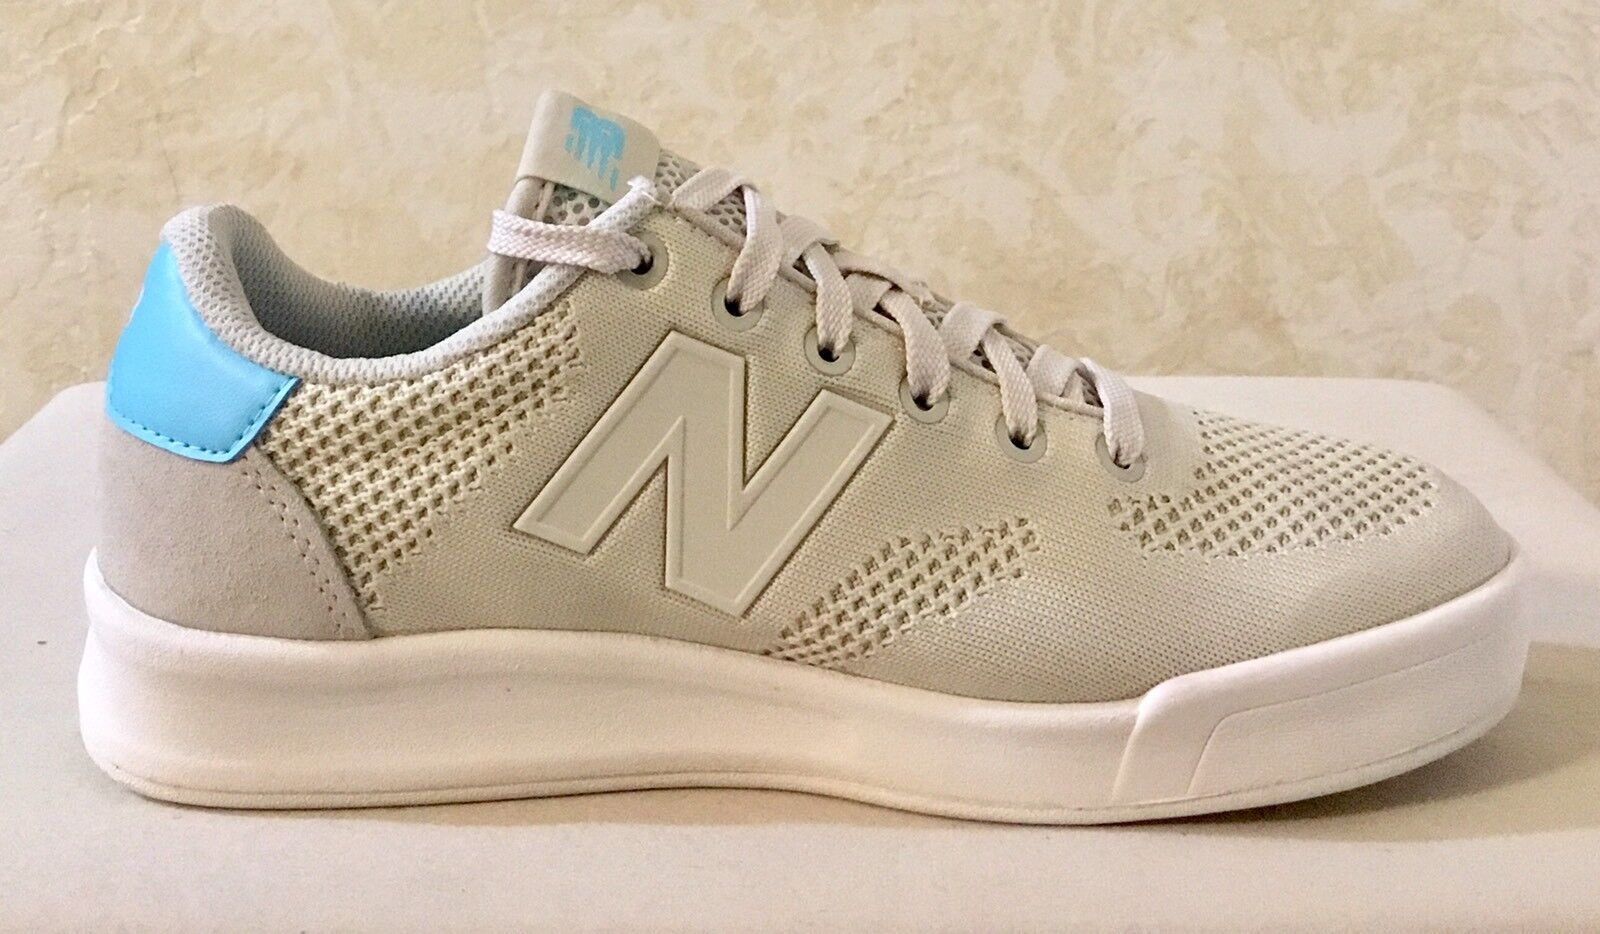 watch 10a87 639f1 Men New Balance CRT300RS Lifestyle   Comfort shoes Sneakers Tan light bluee  Sz 6.5